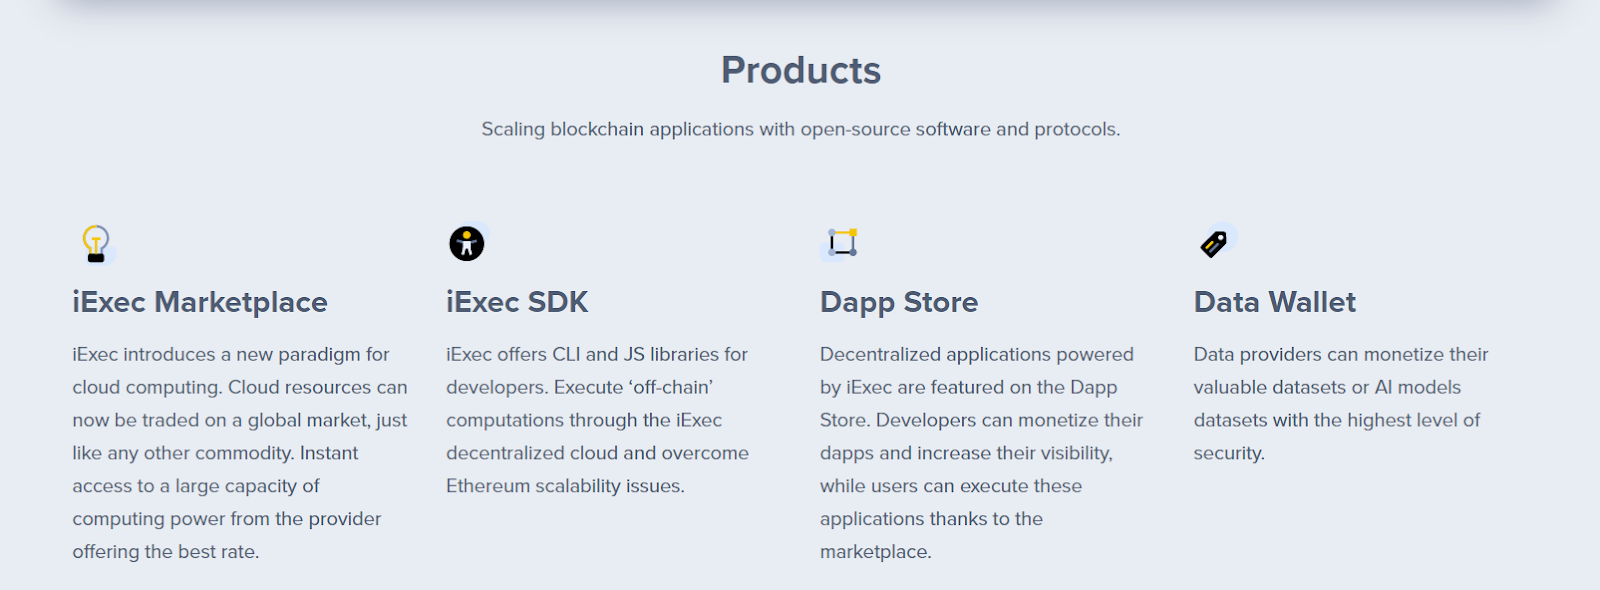 Scaling blockchain application with open-source software and protocols.